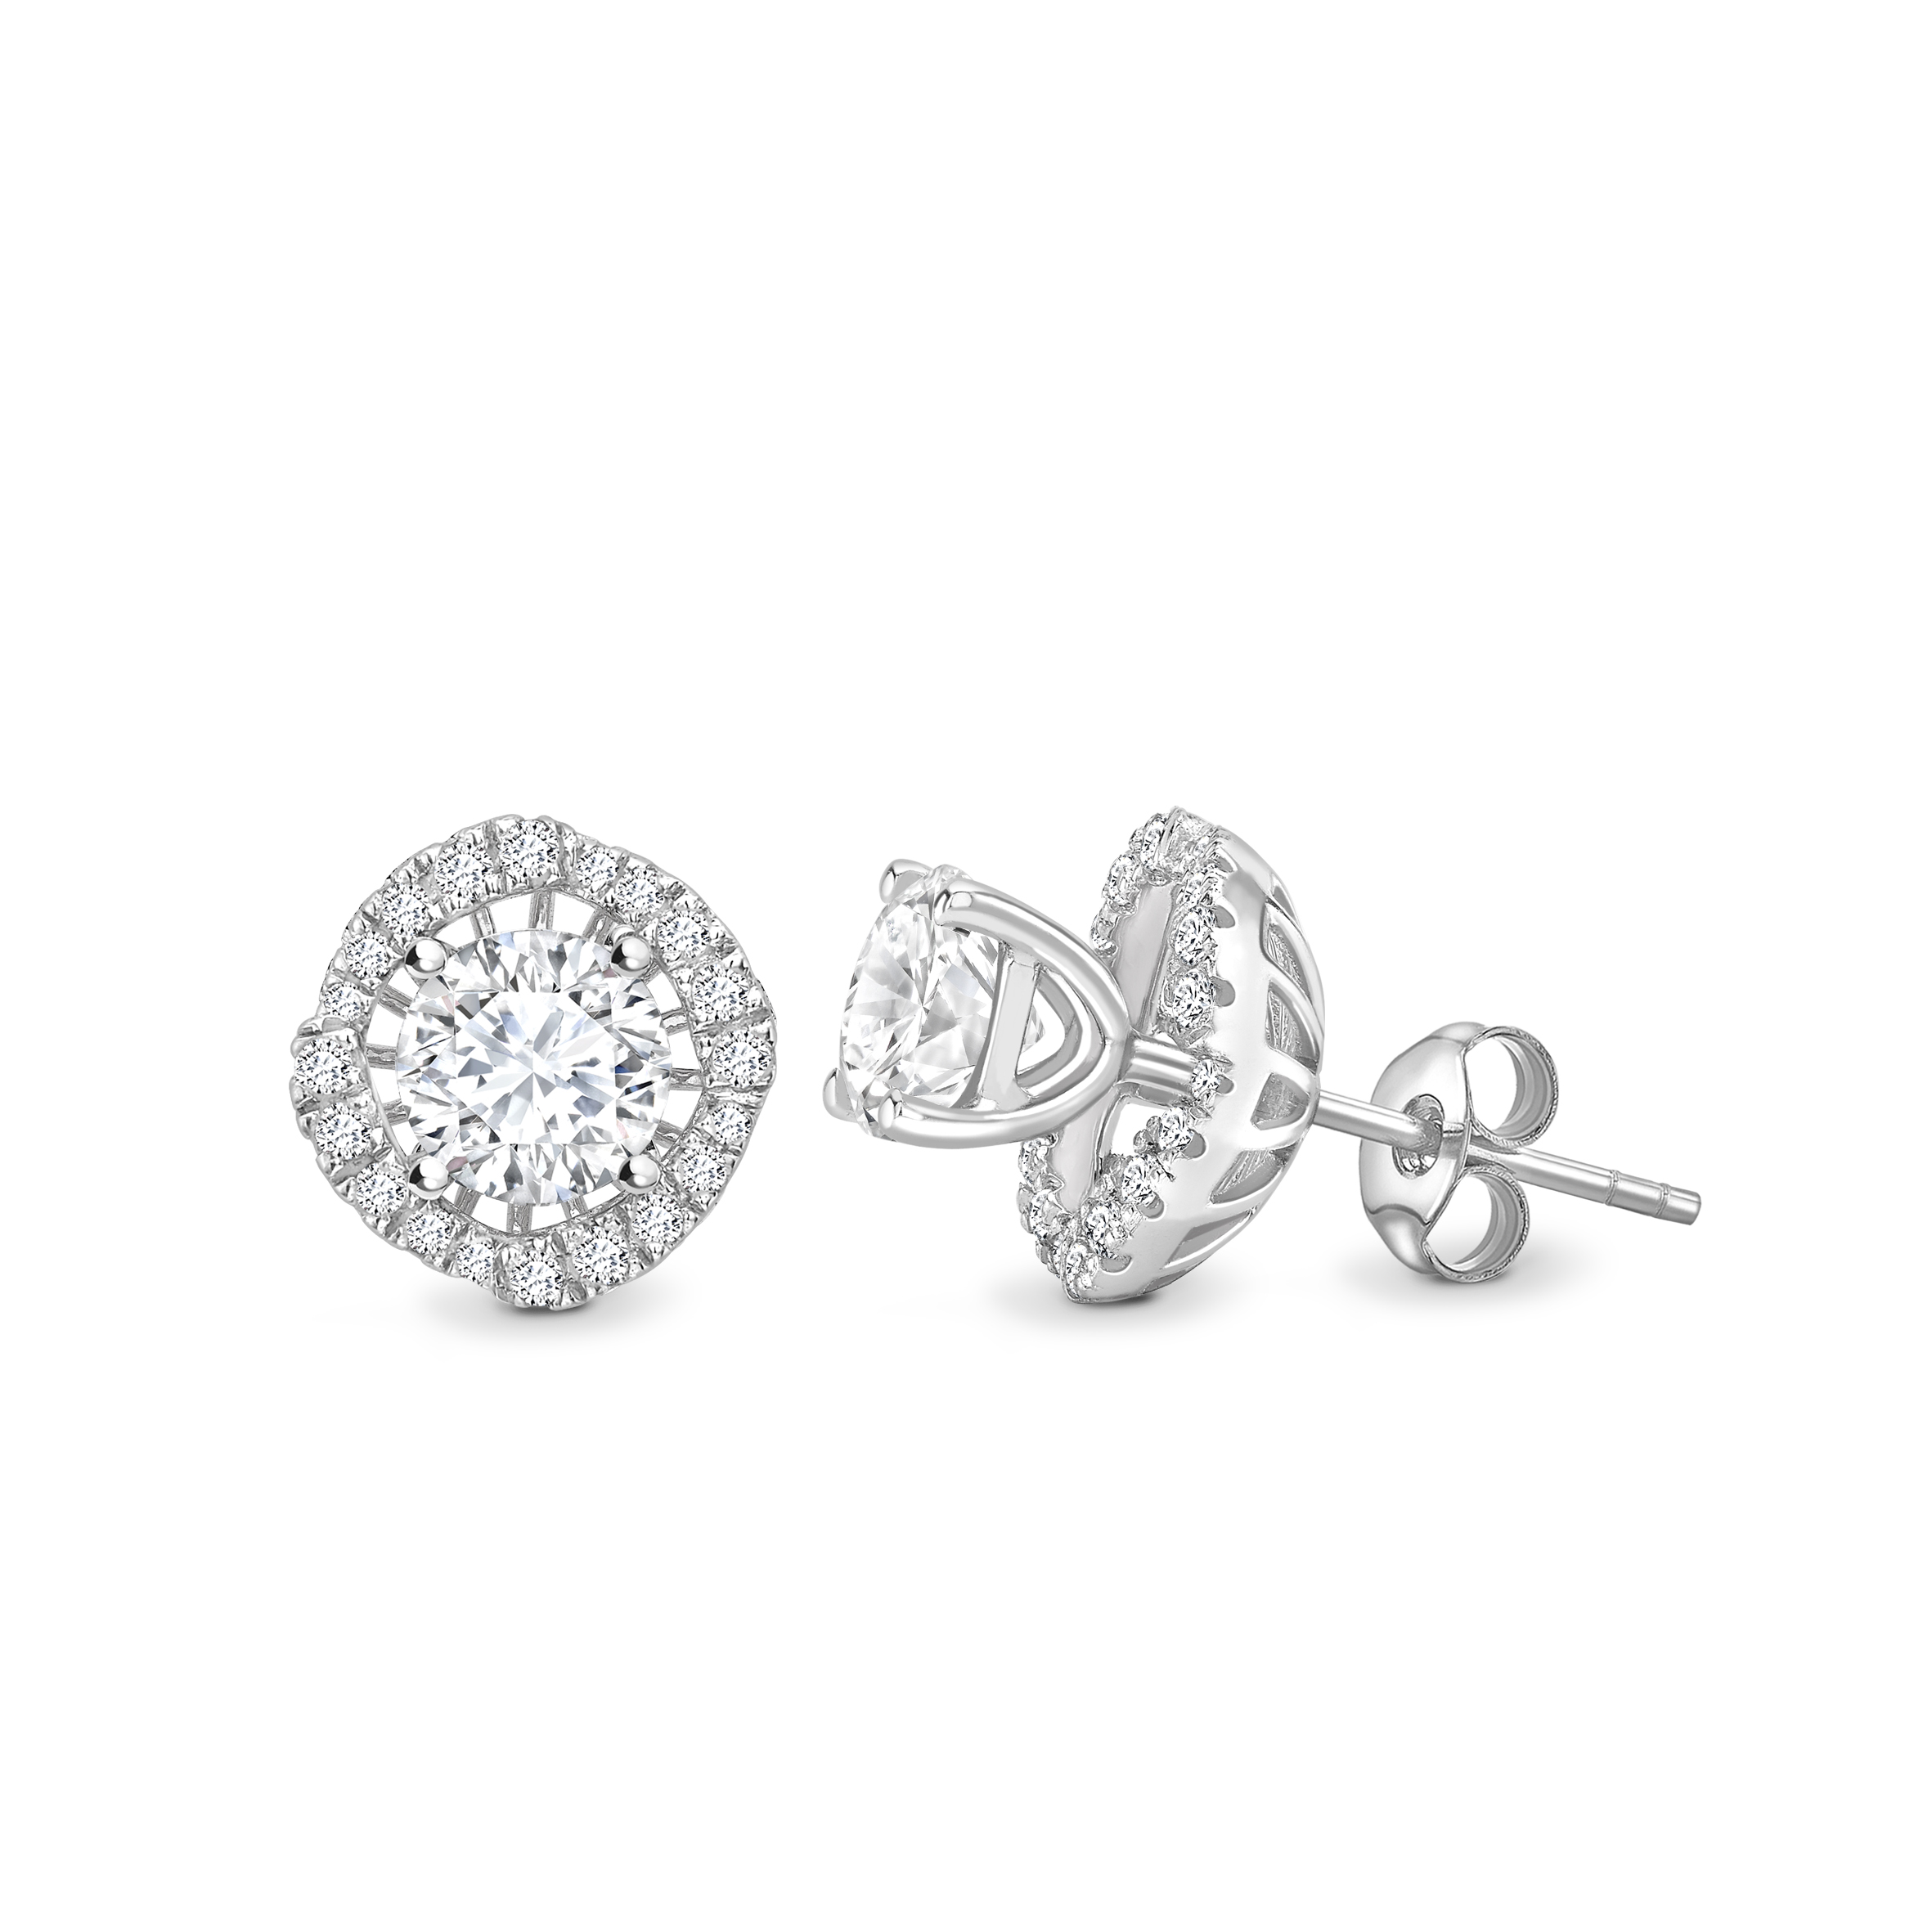 Lot 38 - 18ct White Gold Halo Set Earrings 1.03 Carats